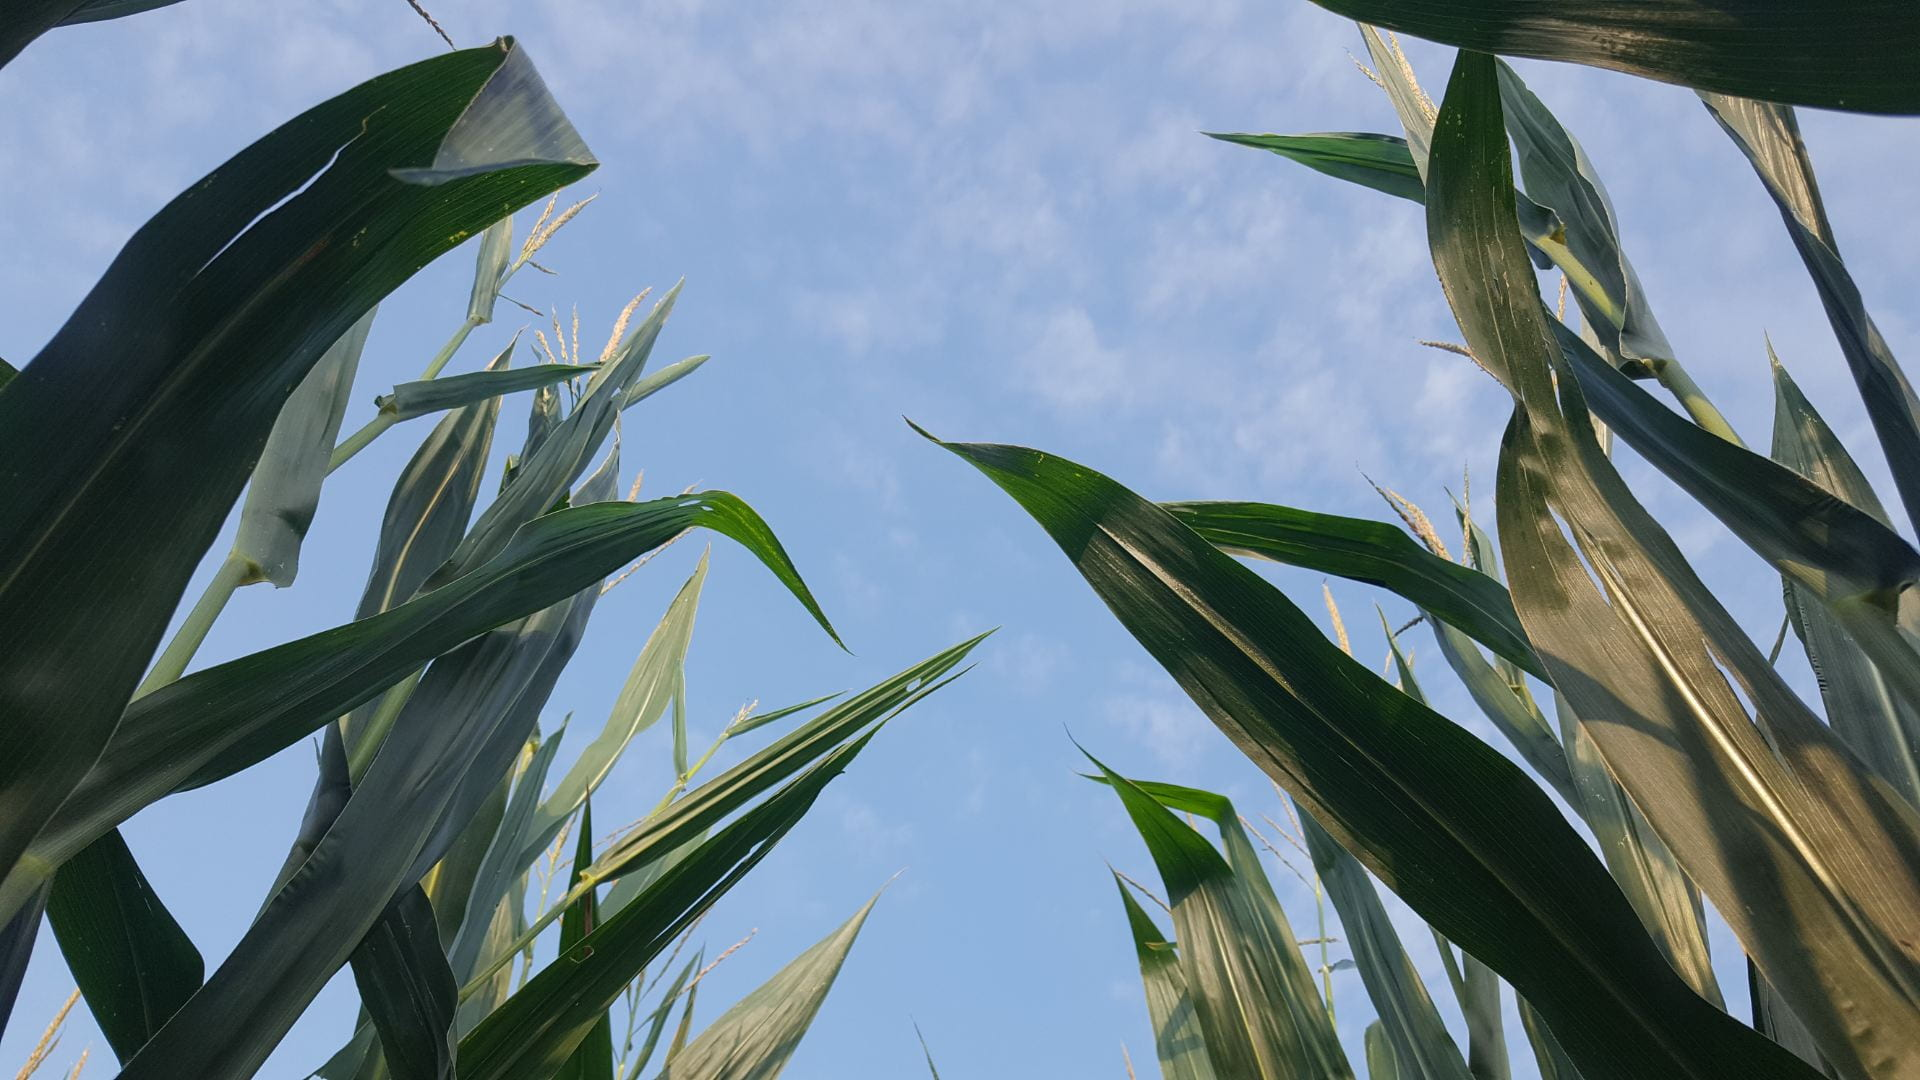 Corn leaves and tassels with blue skies in the background